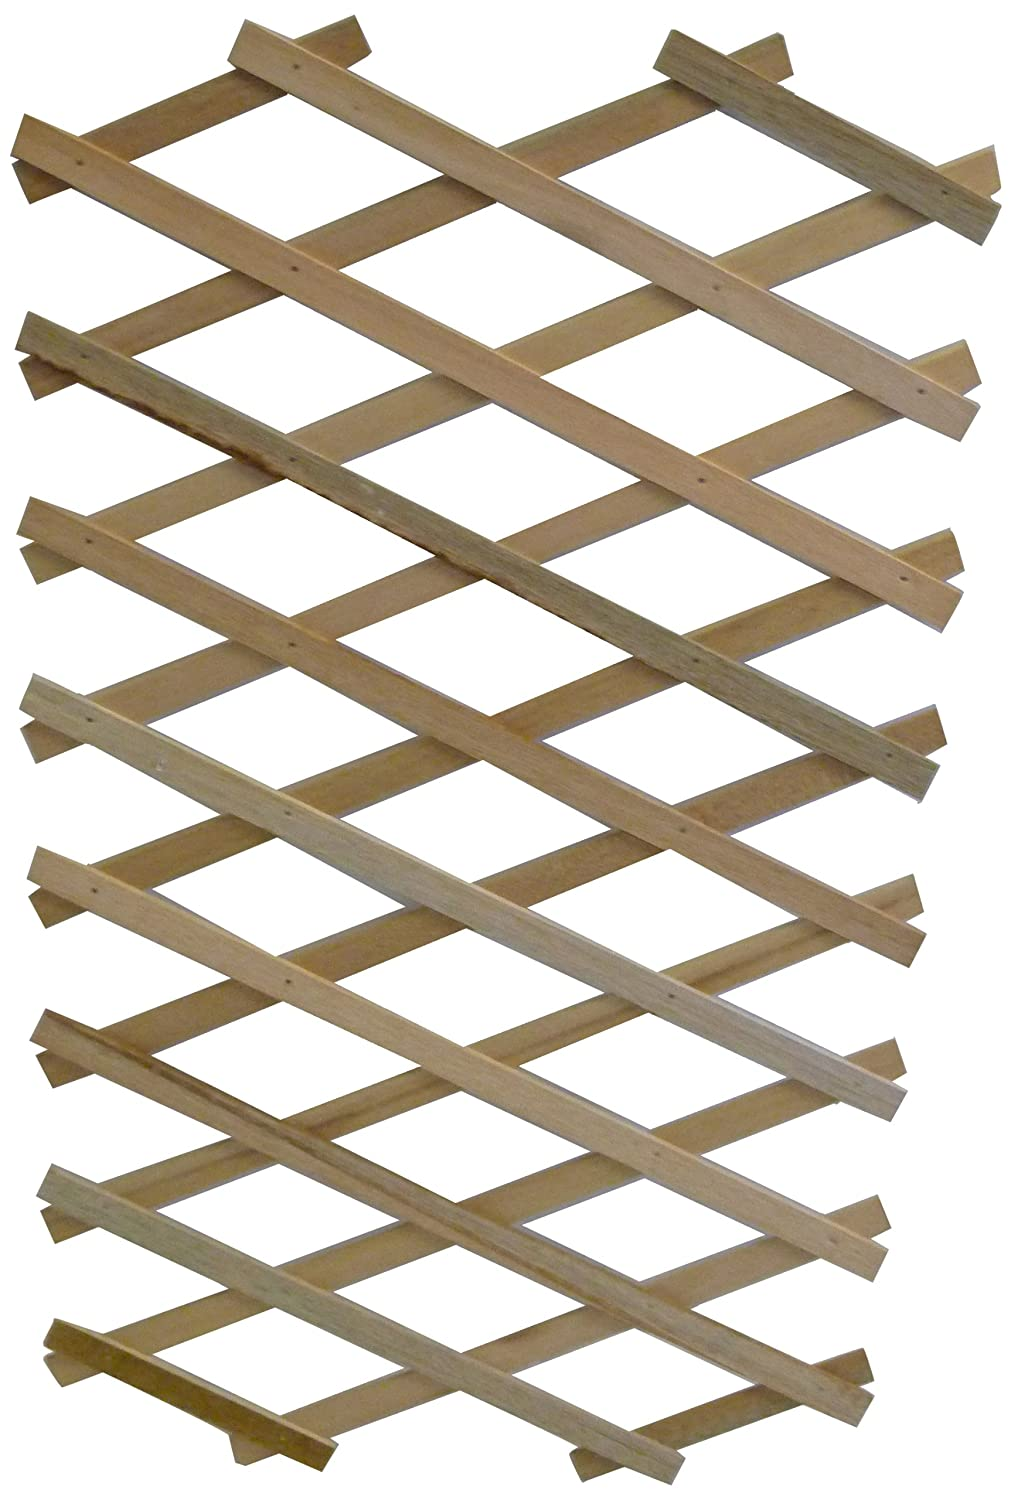 Apollo Expanding Wooden Trellis with Robust Plant Support Apollo Gardening Ltd